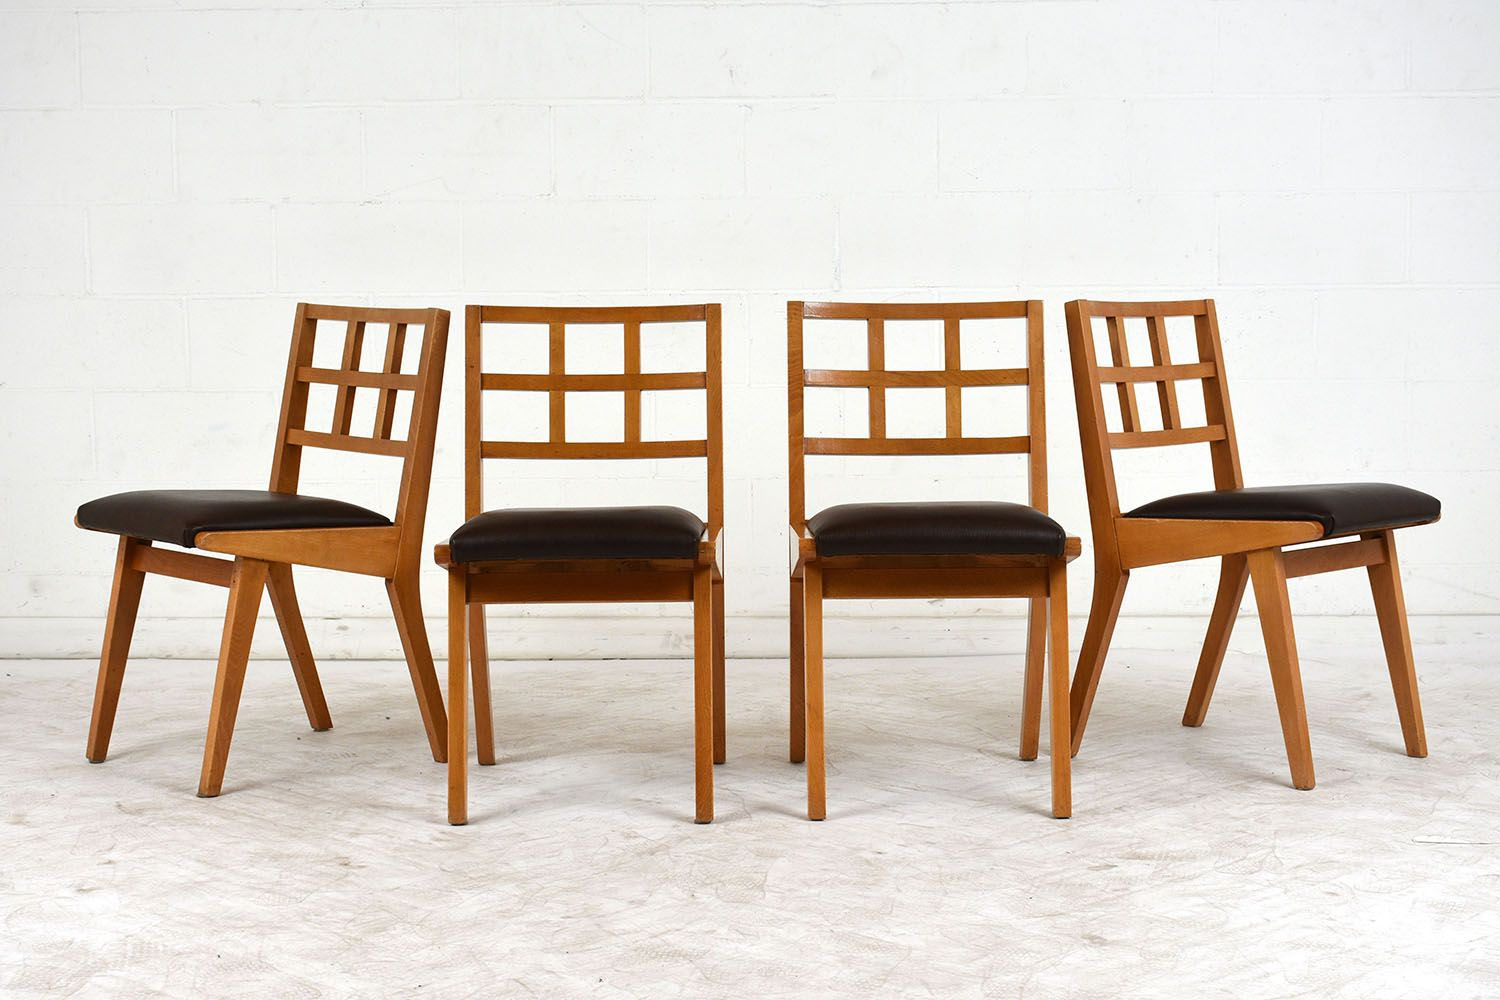 Mid century modern dining chairs 1960s set of 4 for sale for Modern dining chairs ireland